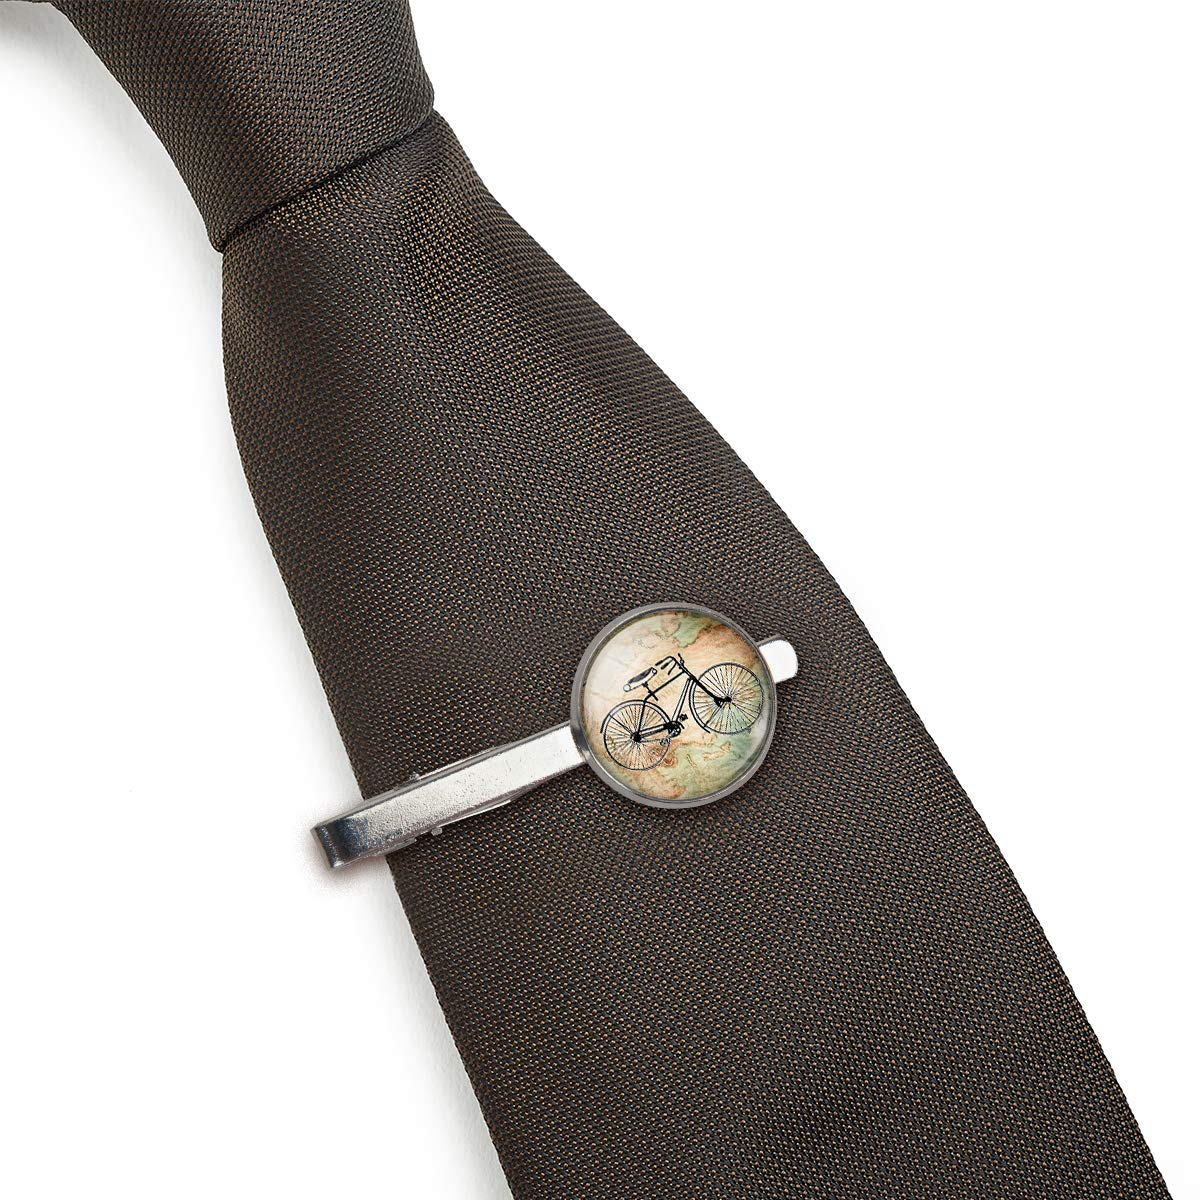 LooPoP Men Tie Clip Vintage Bicycle Map Stainless Tie Pins for Business Wedding Shirts Tie Clips Include Gift Box